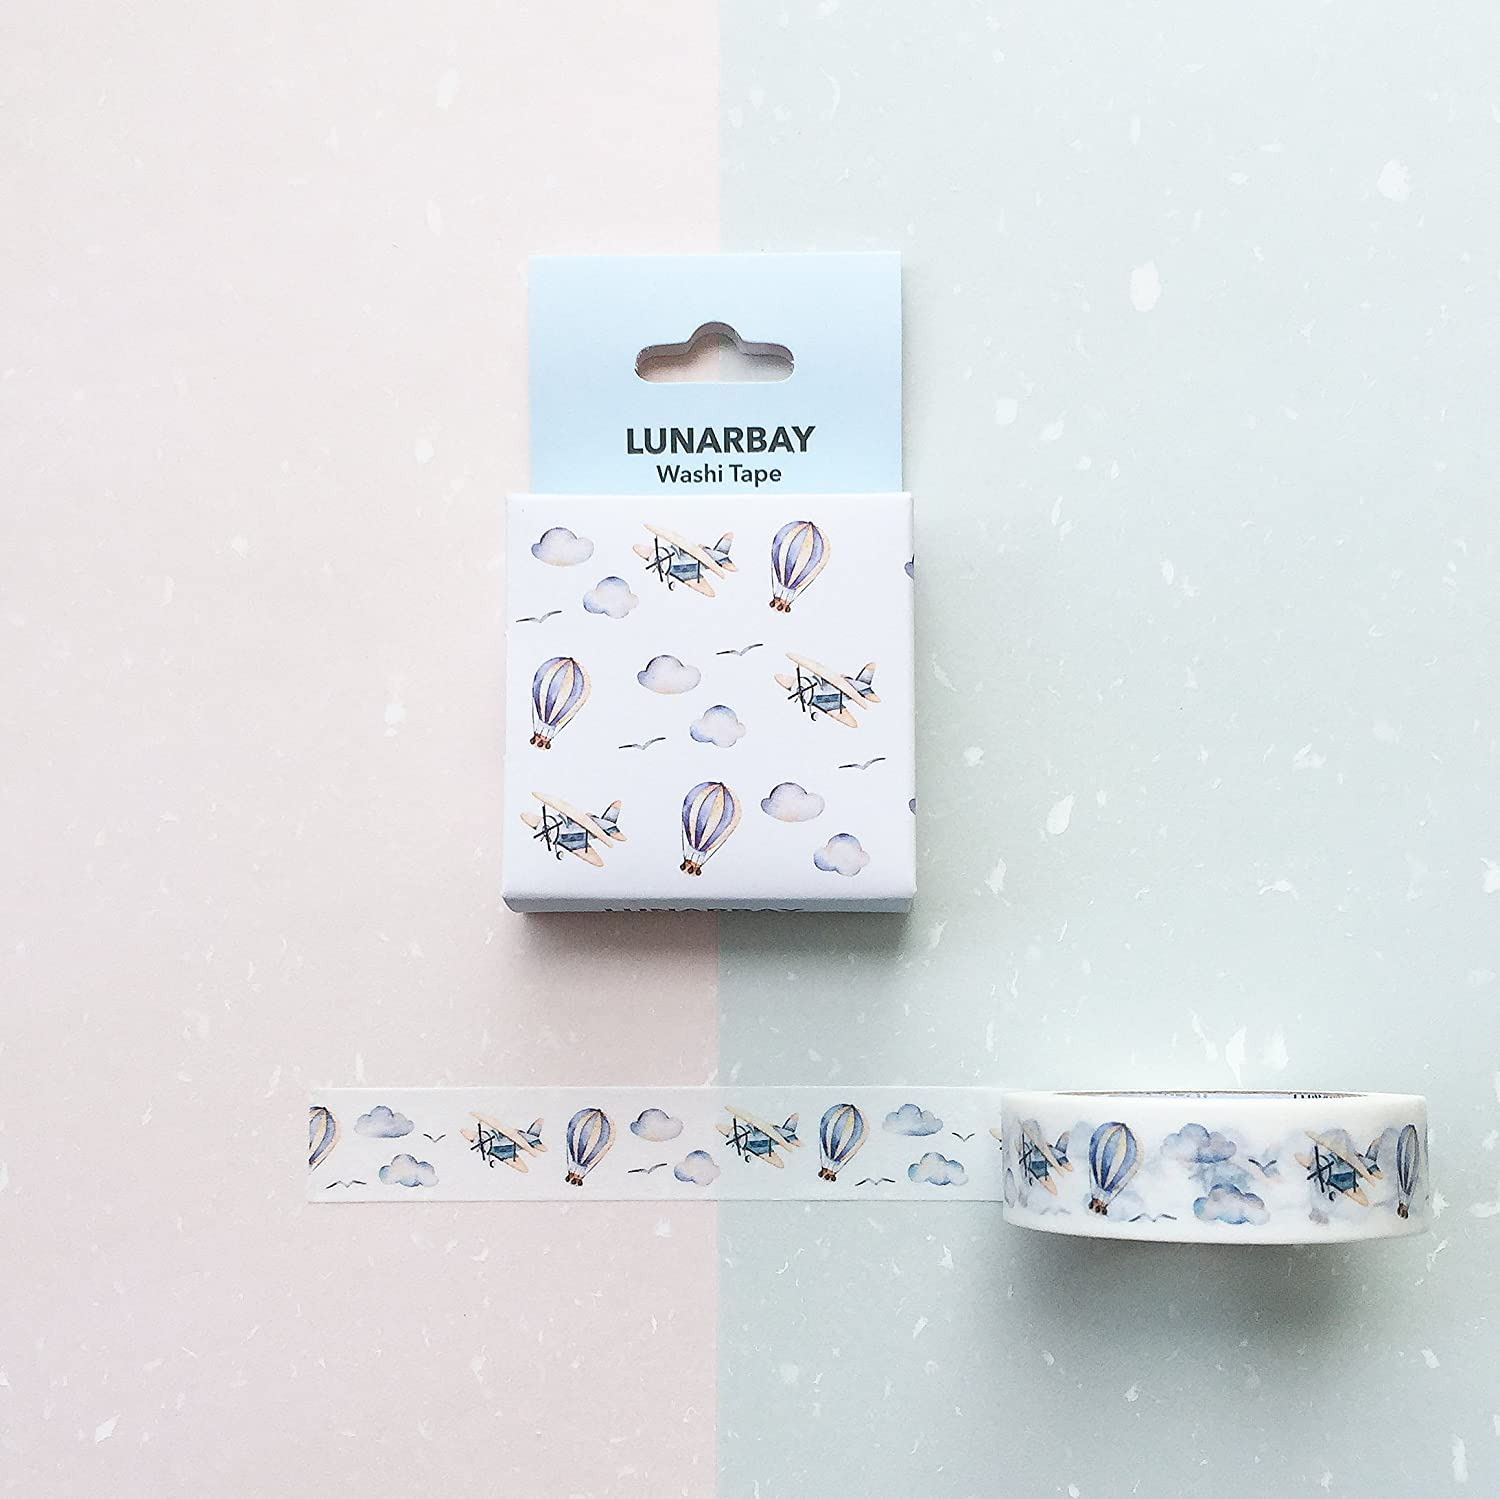 Limited Edition Washi Tape - Plane and Air Balloon / Japanese Washi Tape / Best Seller / Lunarbaystore.com